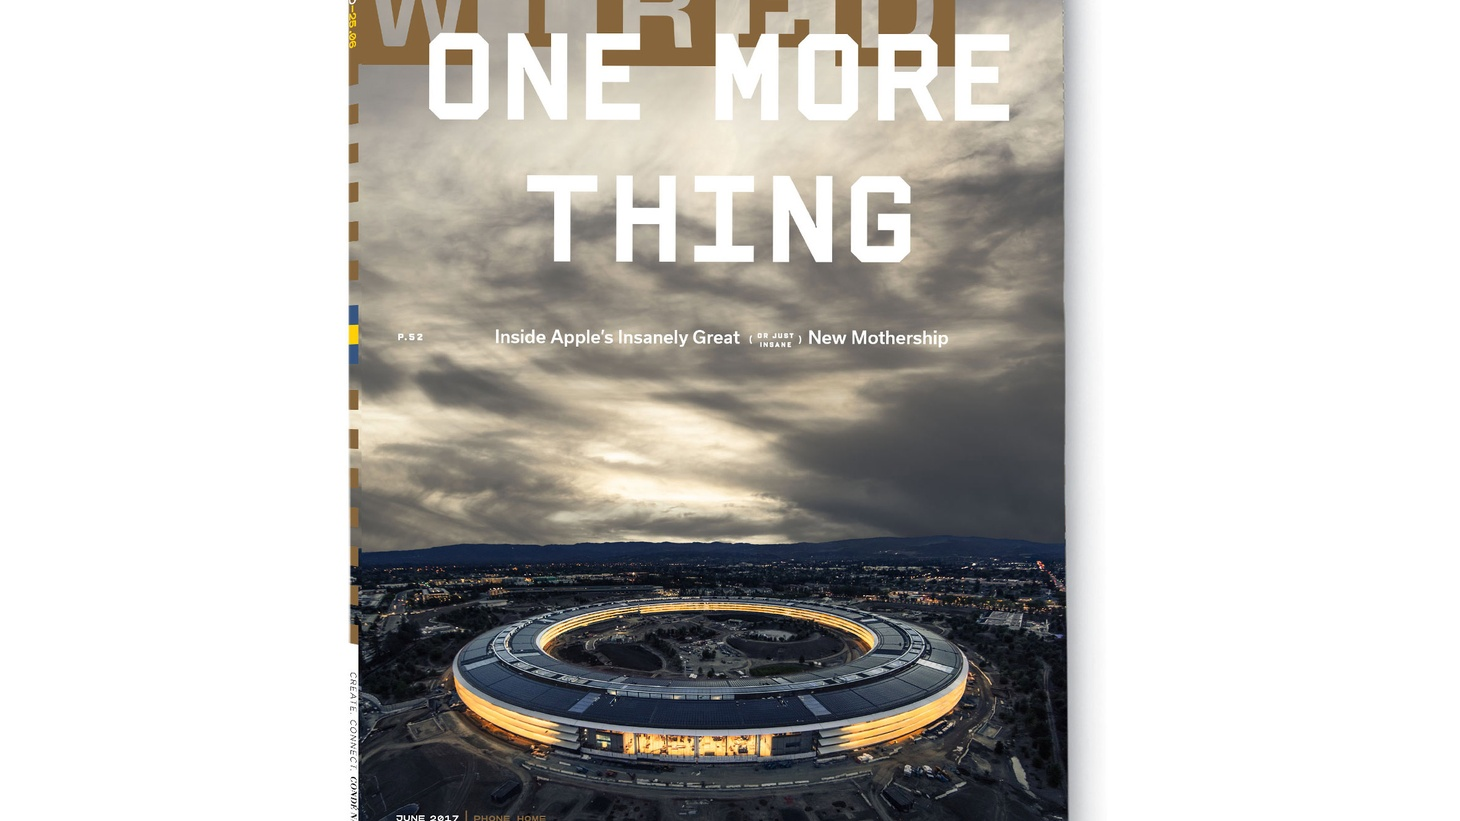 Steven Levy's cover story in WIRED   In 2011, Steve Jobs went before the Cupertino City Council. He was in very poor health but he was animated by his next big project: a new campus that could fit 12,000 Apple employees. He presented renderings of a giant ring sitting in a tree-filled park. Six years later that building has opened to the first…